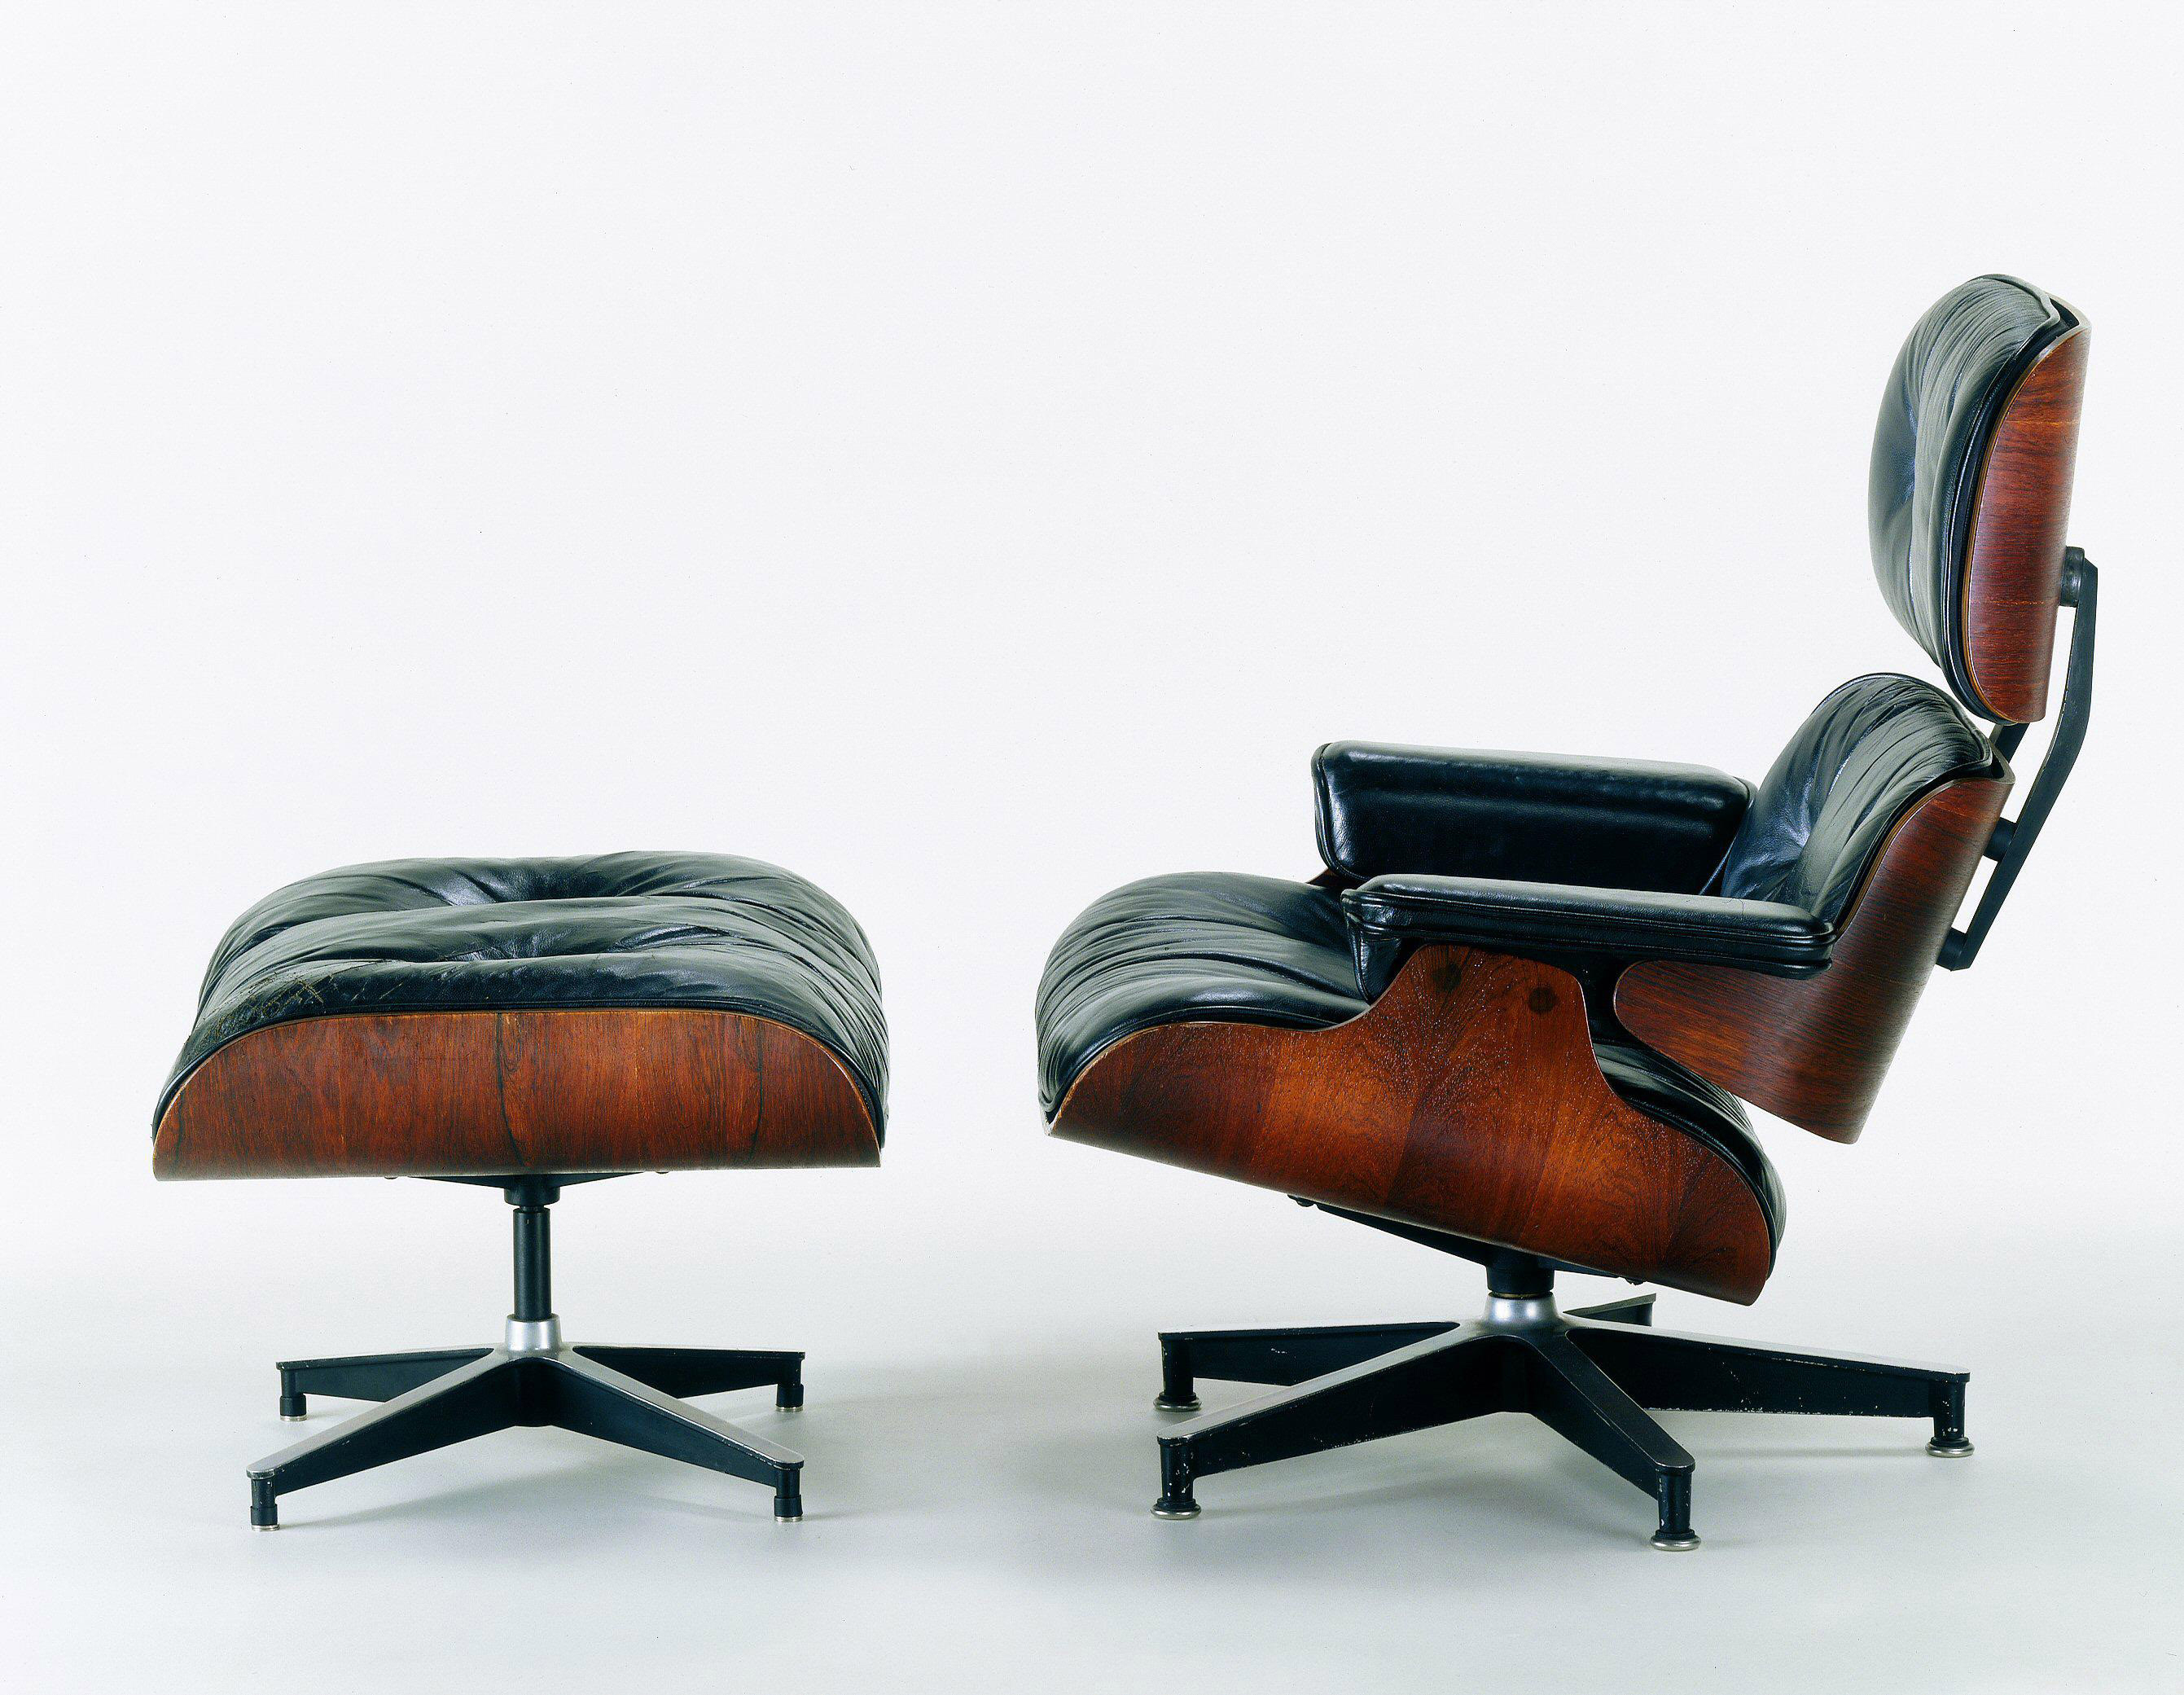 Eames lounge chair manufacturing in the vitra atelier for Famous scandinavian furniture designers